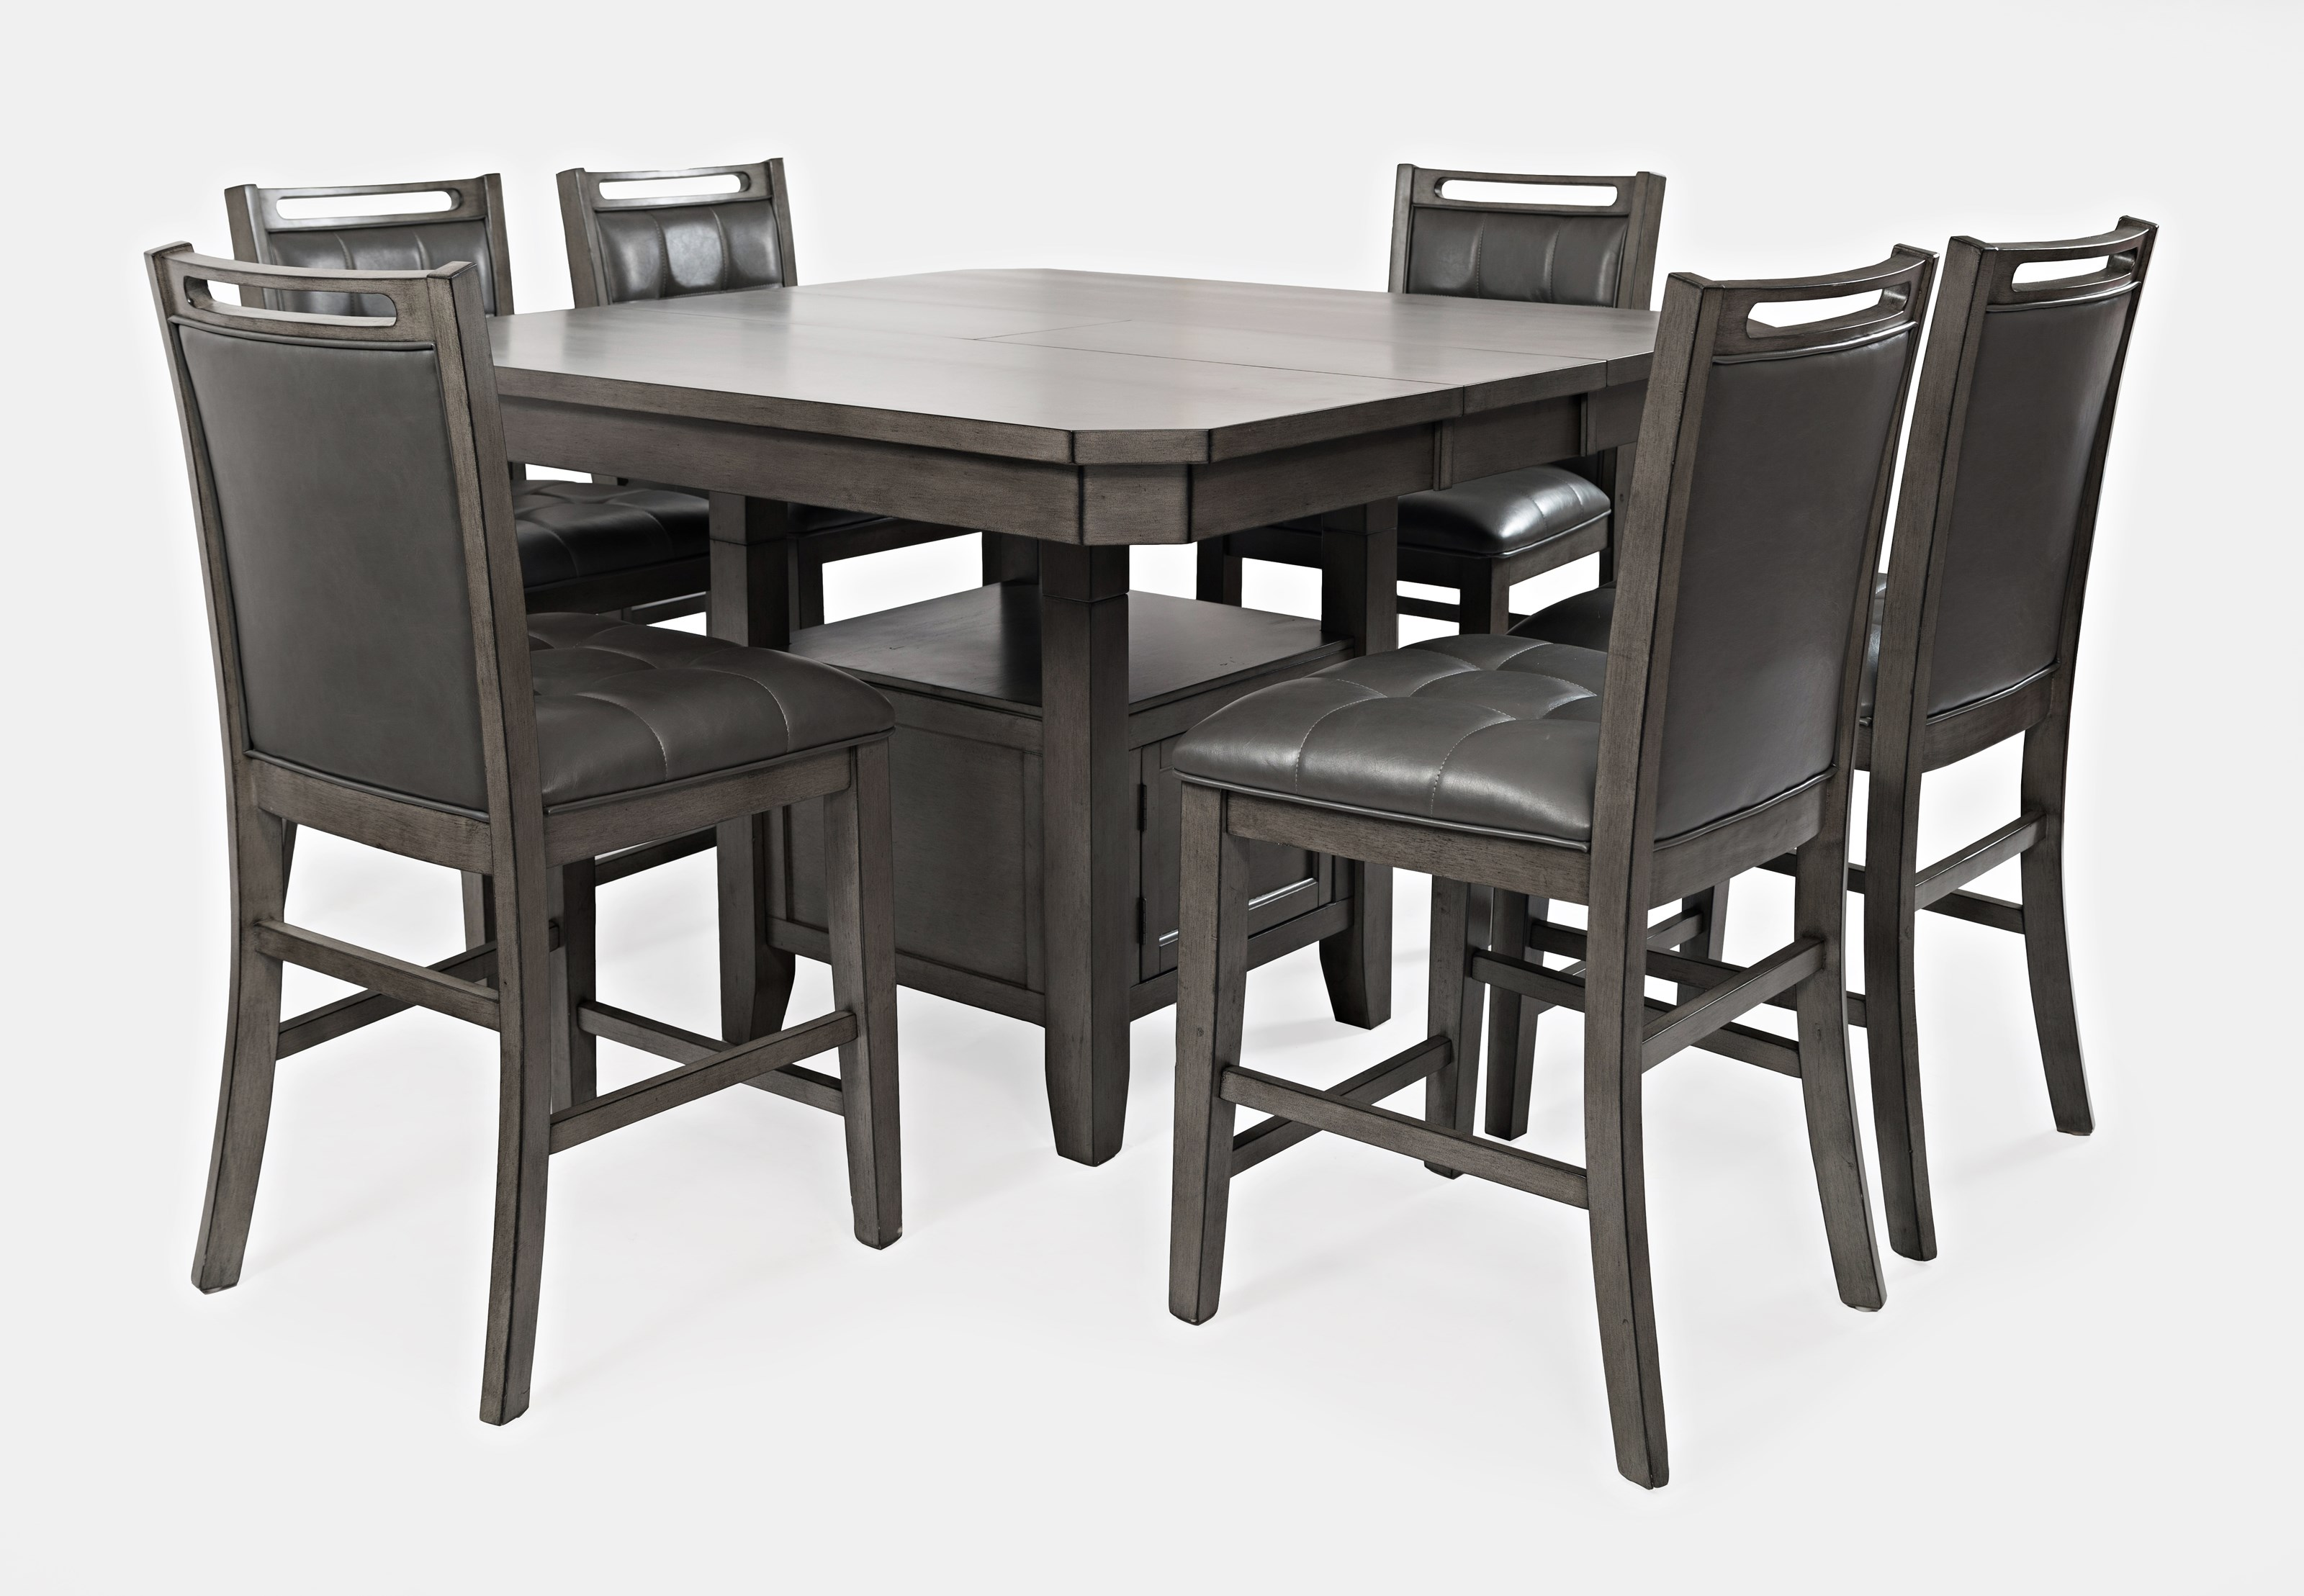 Manchester 7 Piece Counter Table and Chair Set by Jofran at Jofran